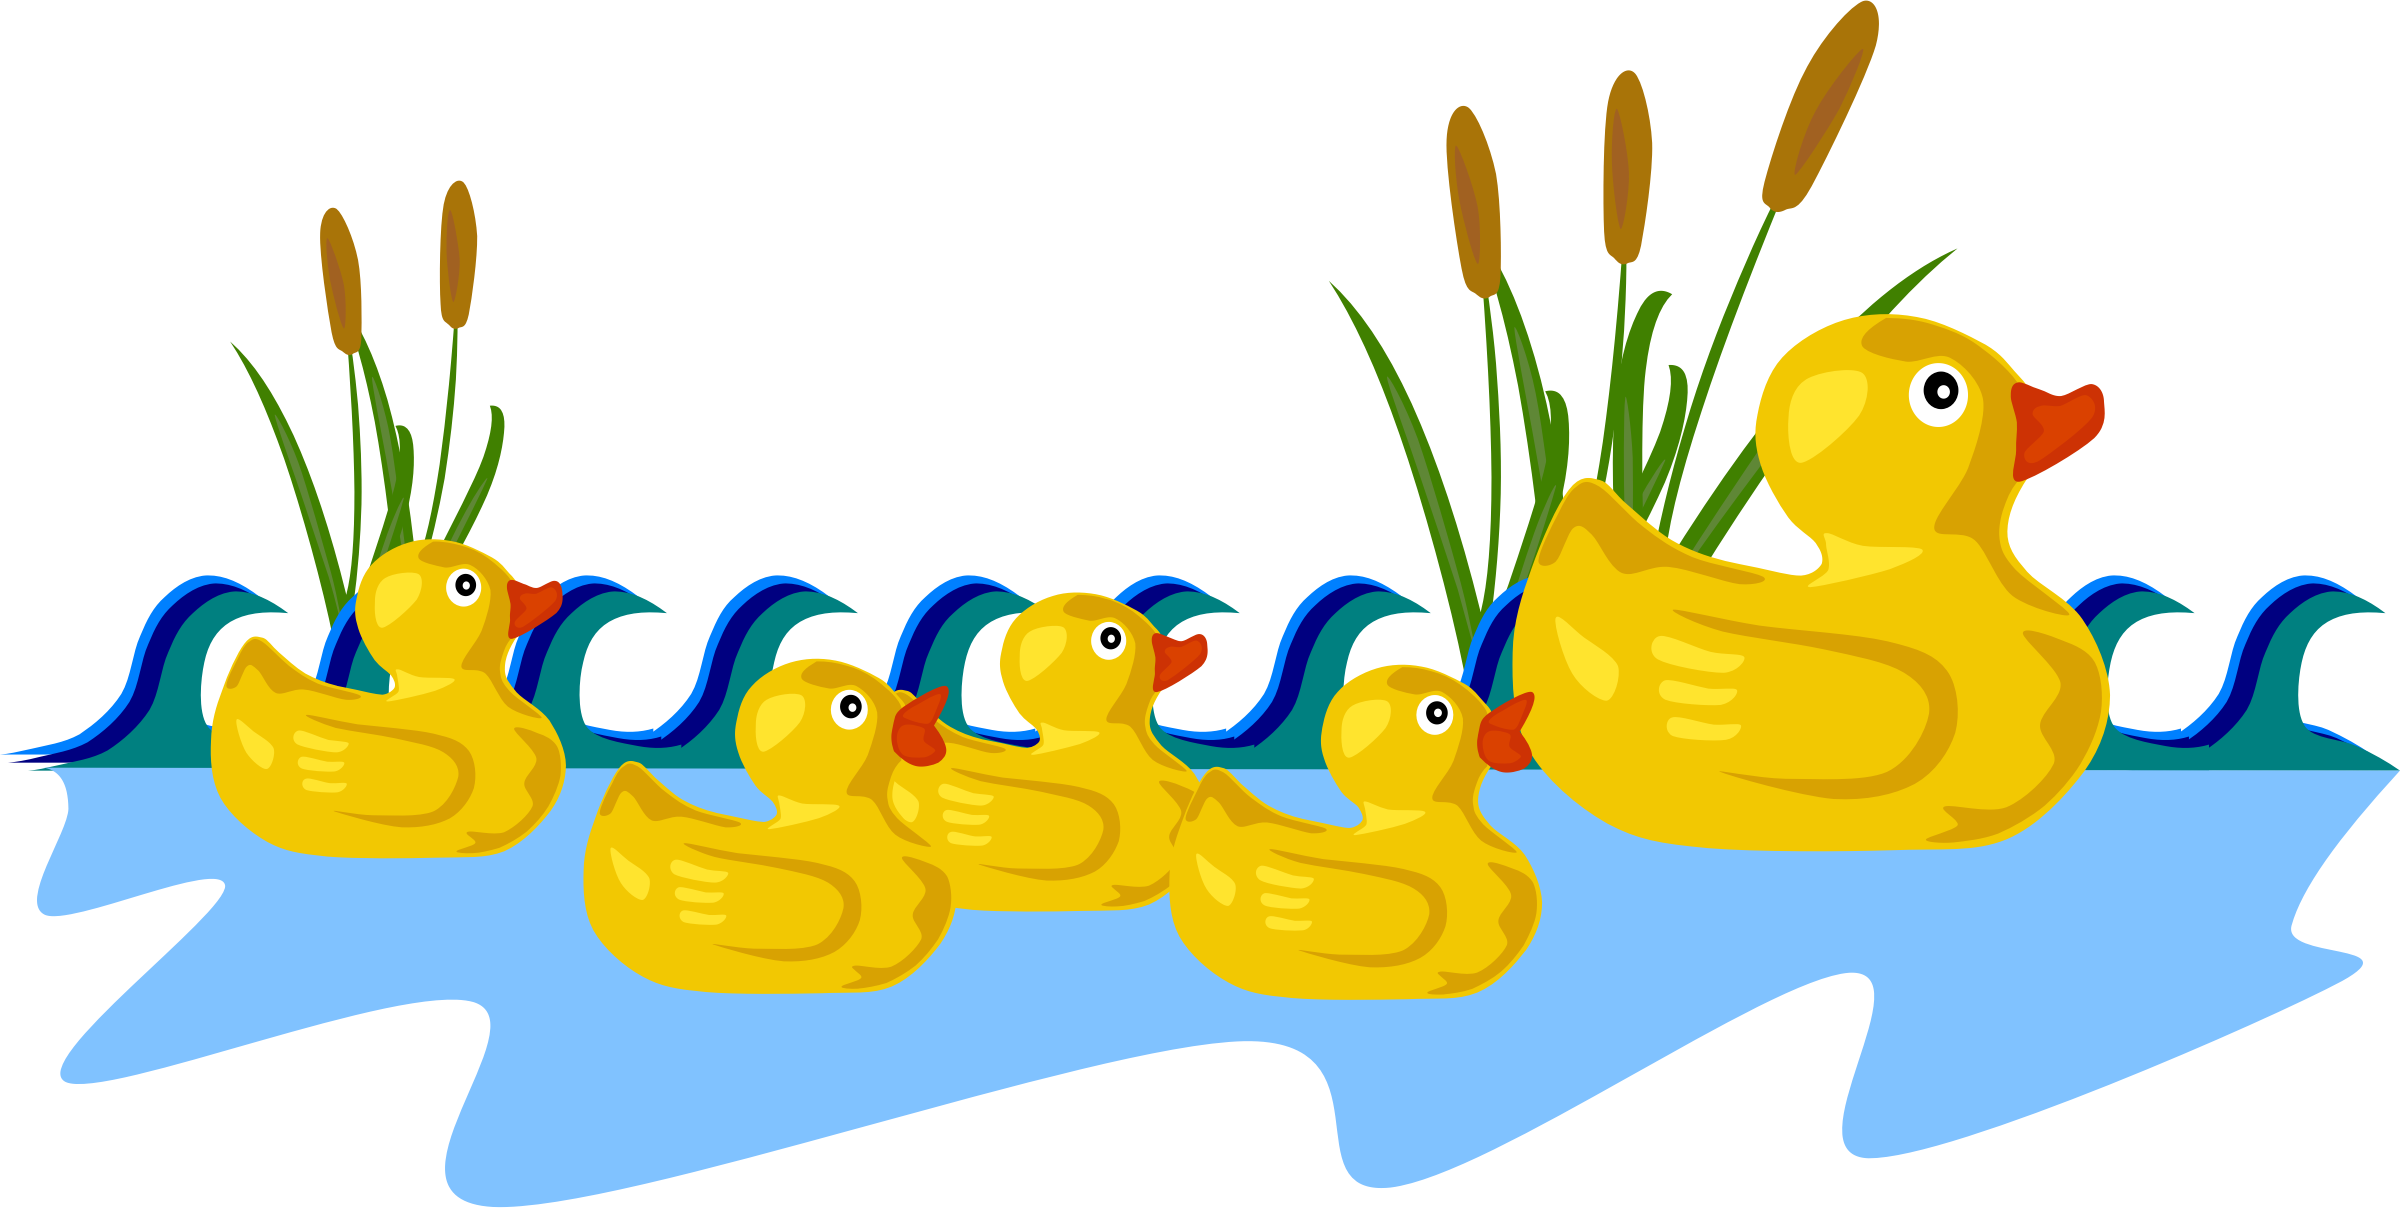 Rubber ducky clipart water clipart. Duck family big image